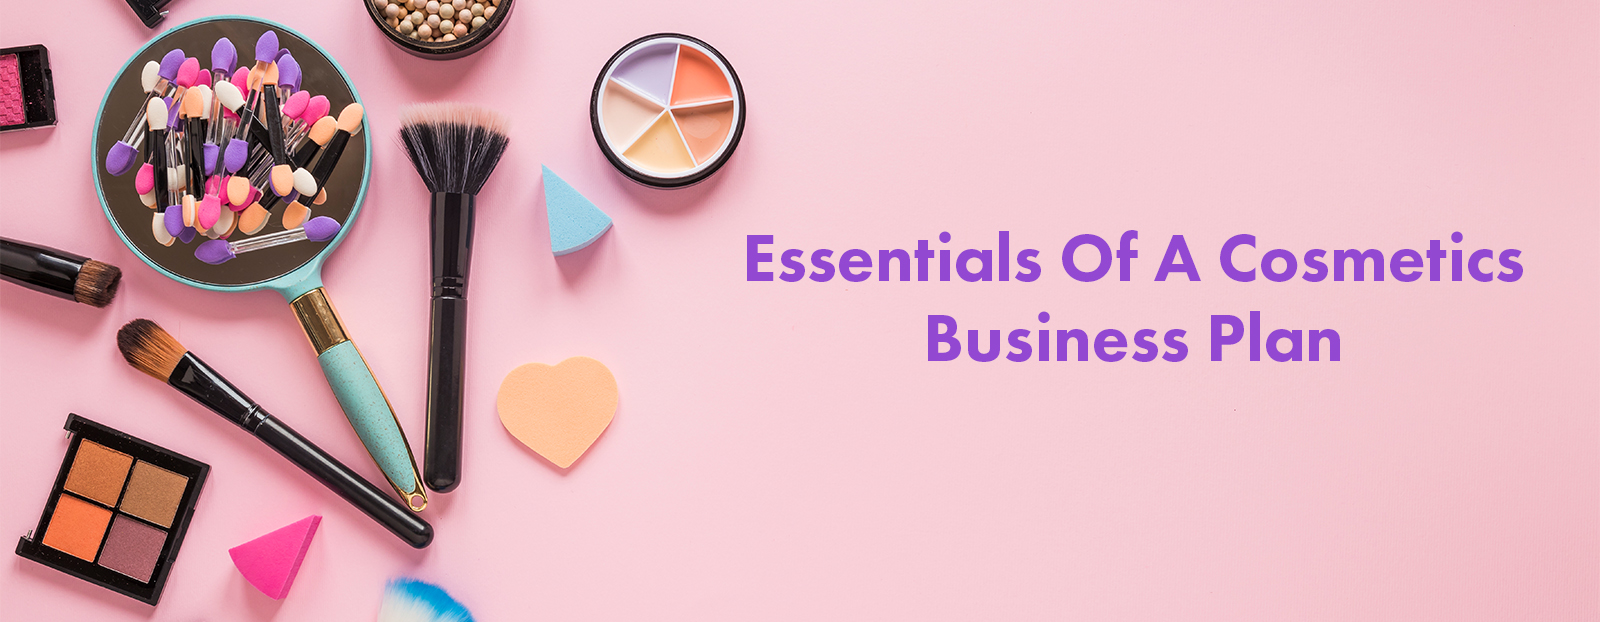 Essentials Of A Cosmetics Business Plan